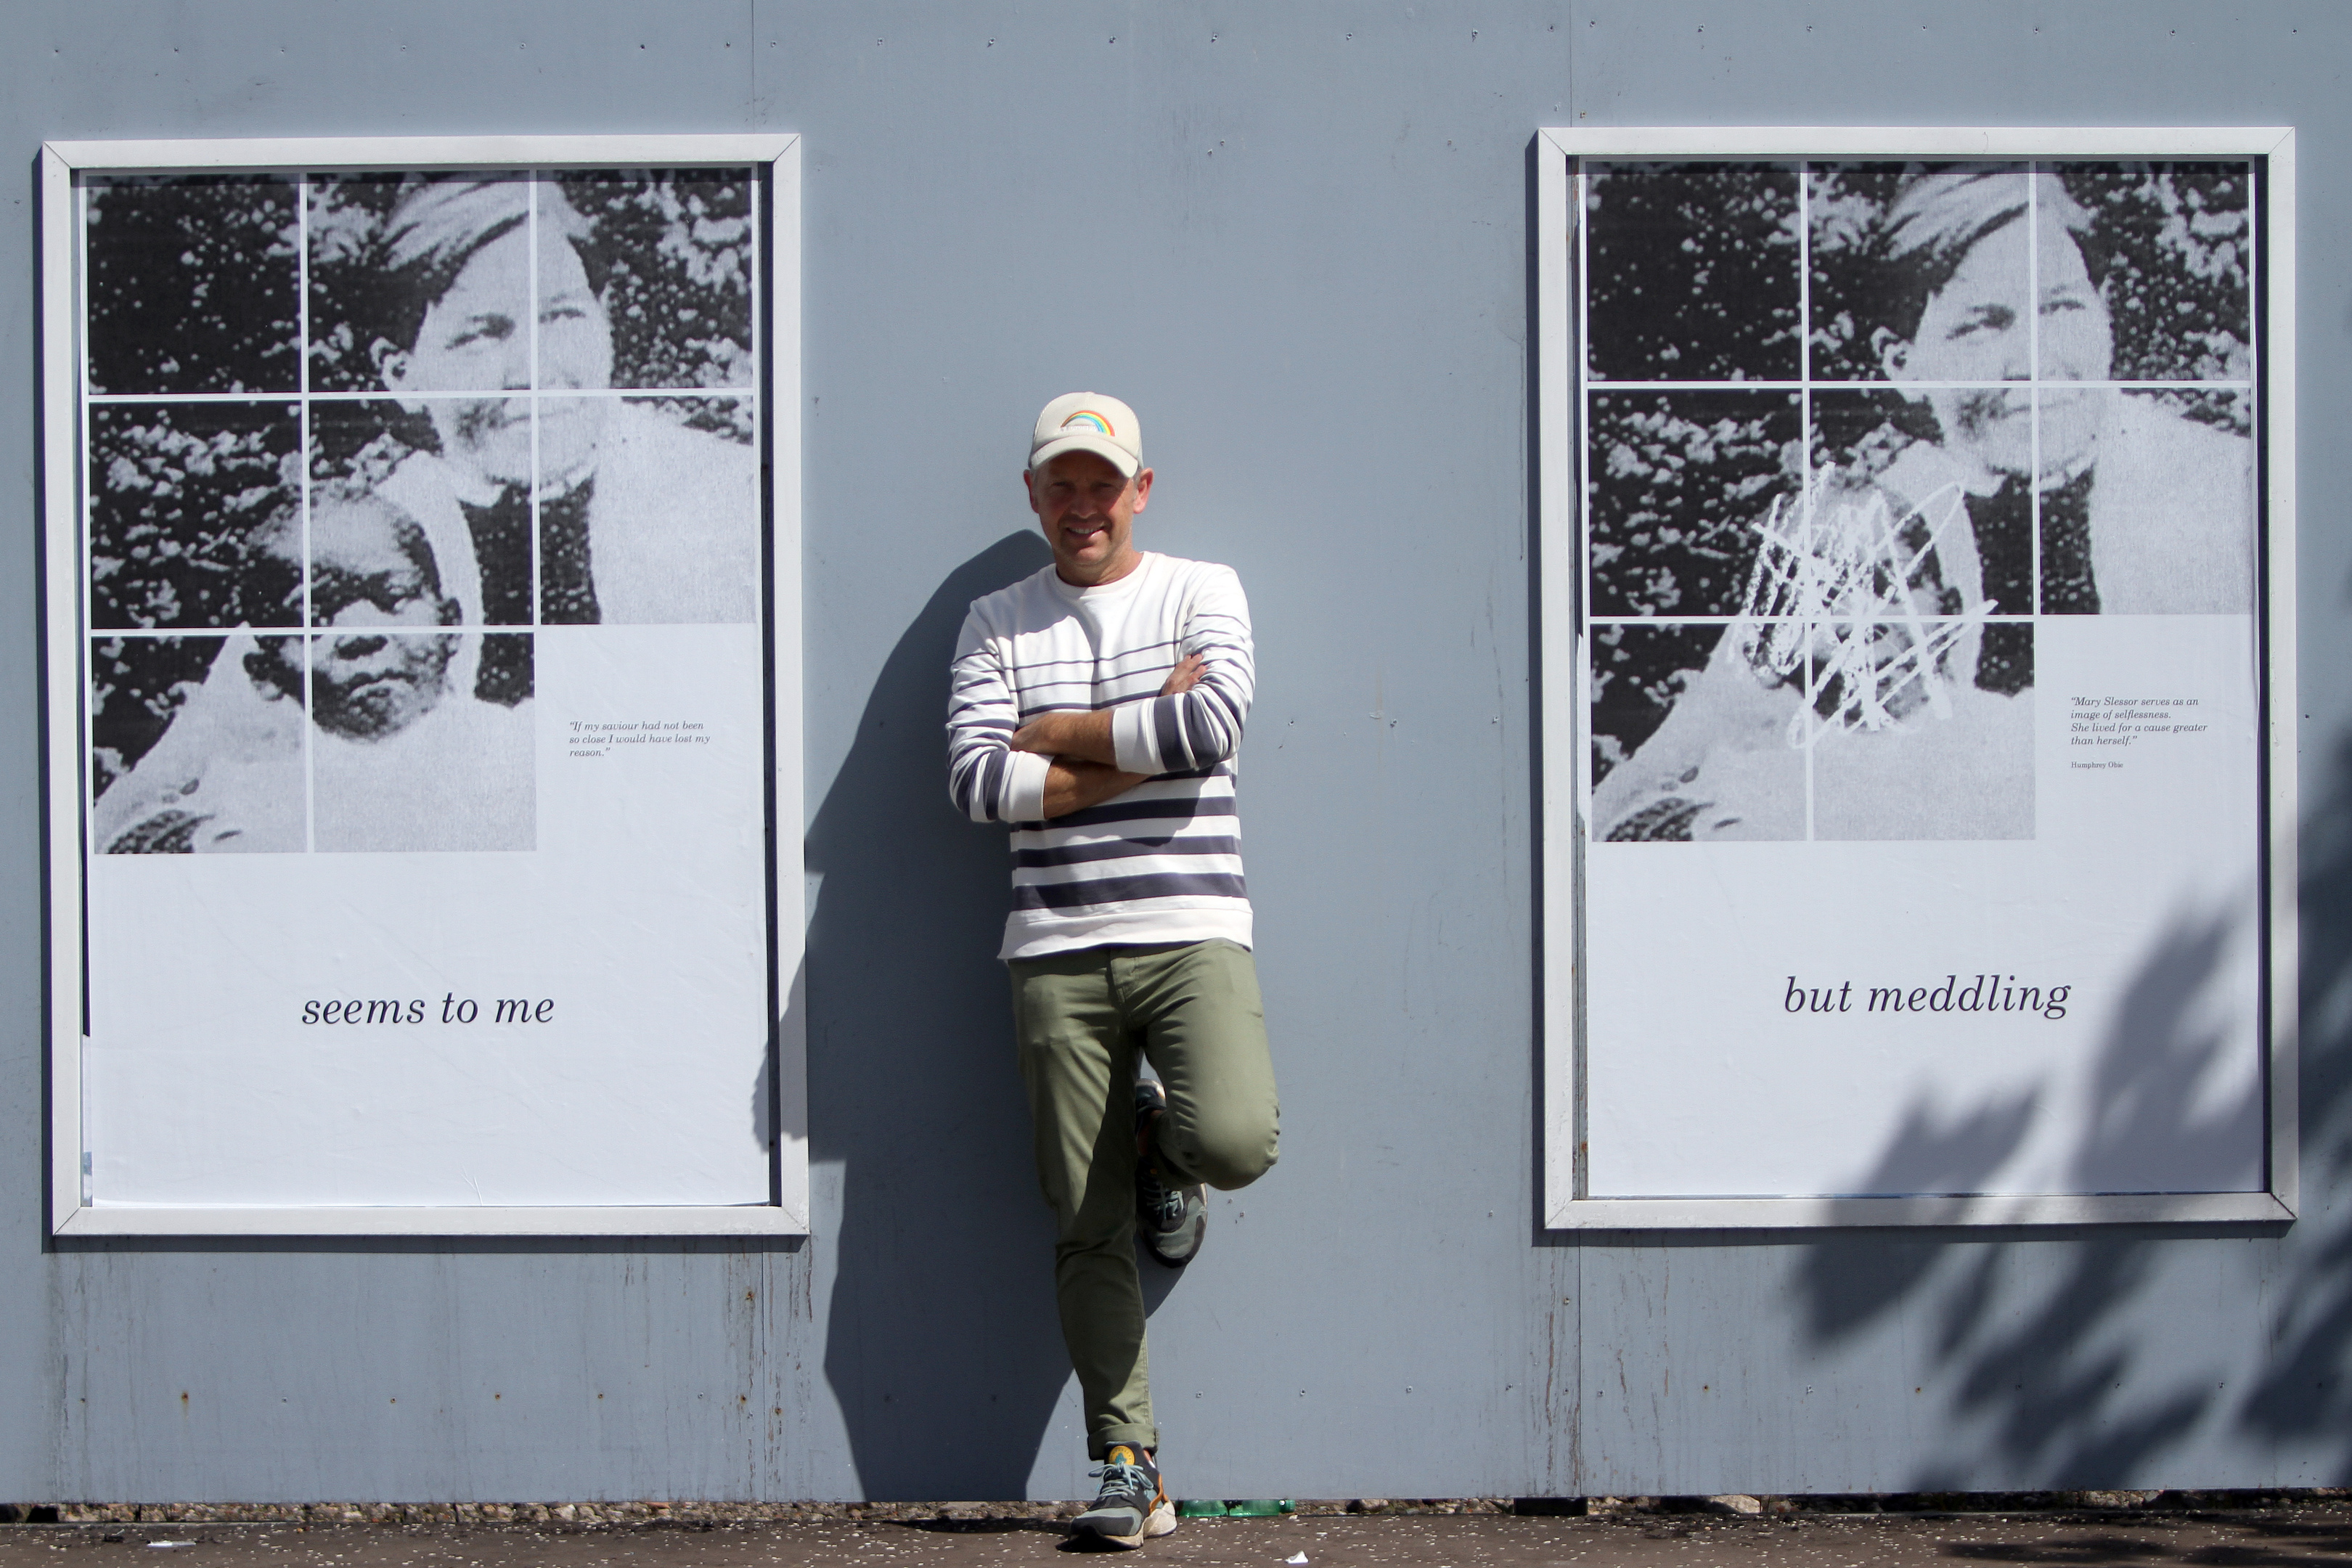 The art exhibition aims to spark debate.